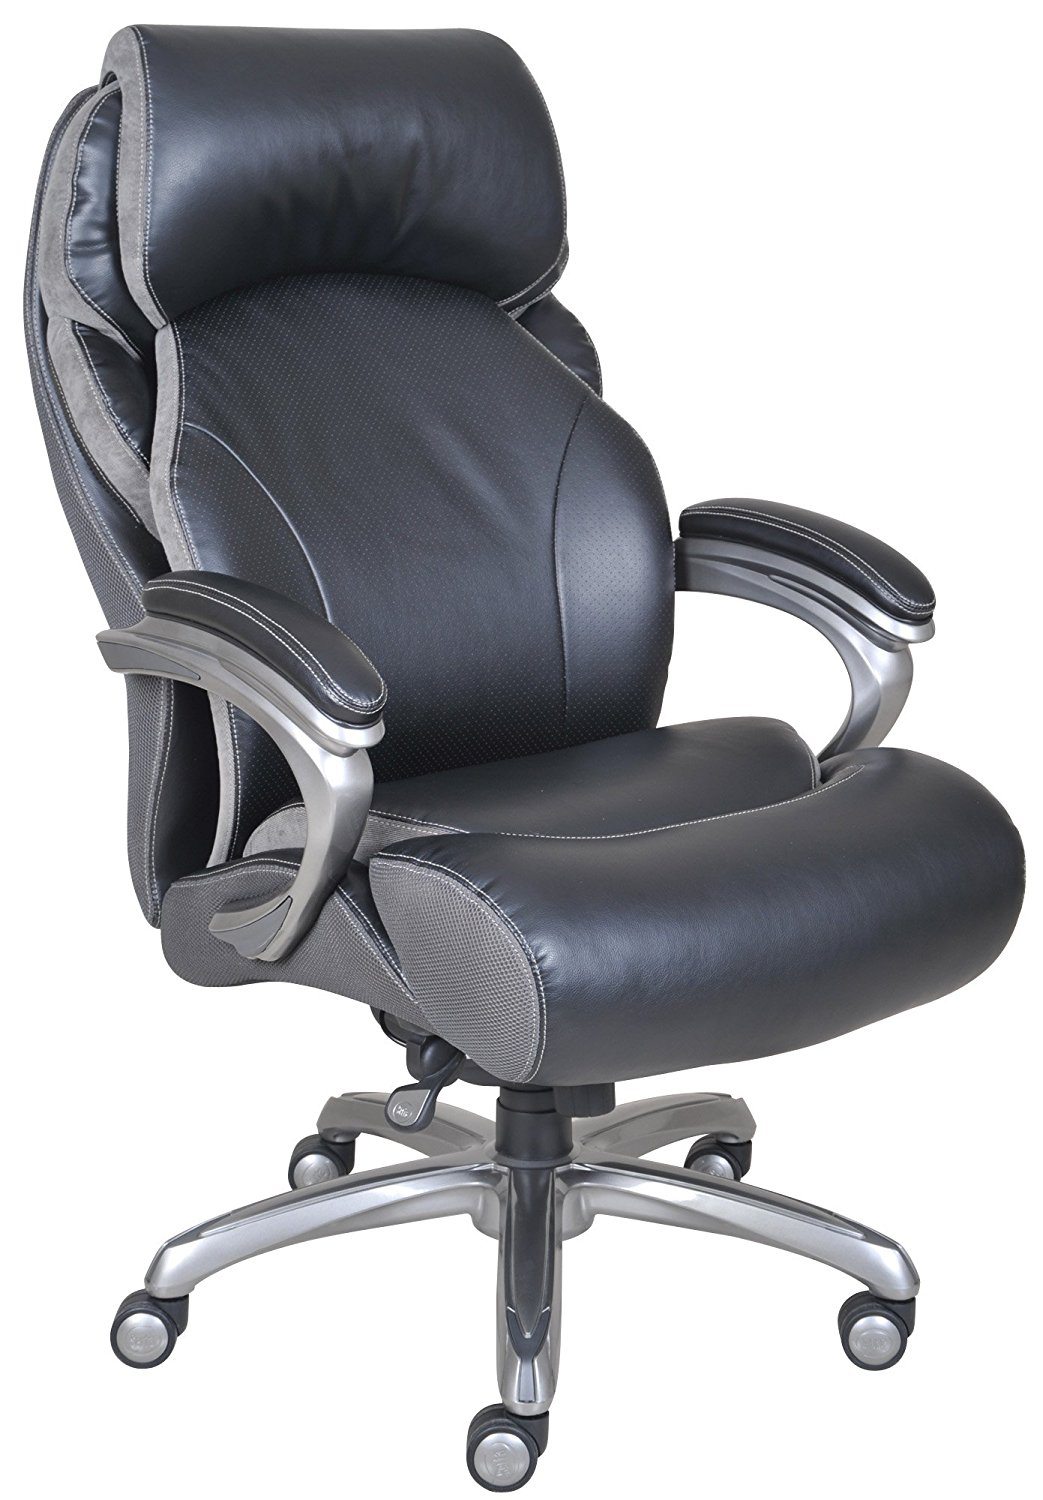 most comfortable office chair under $500